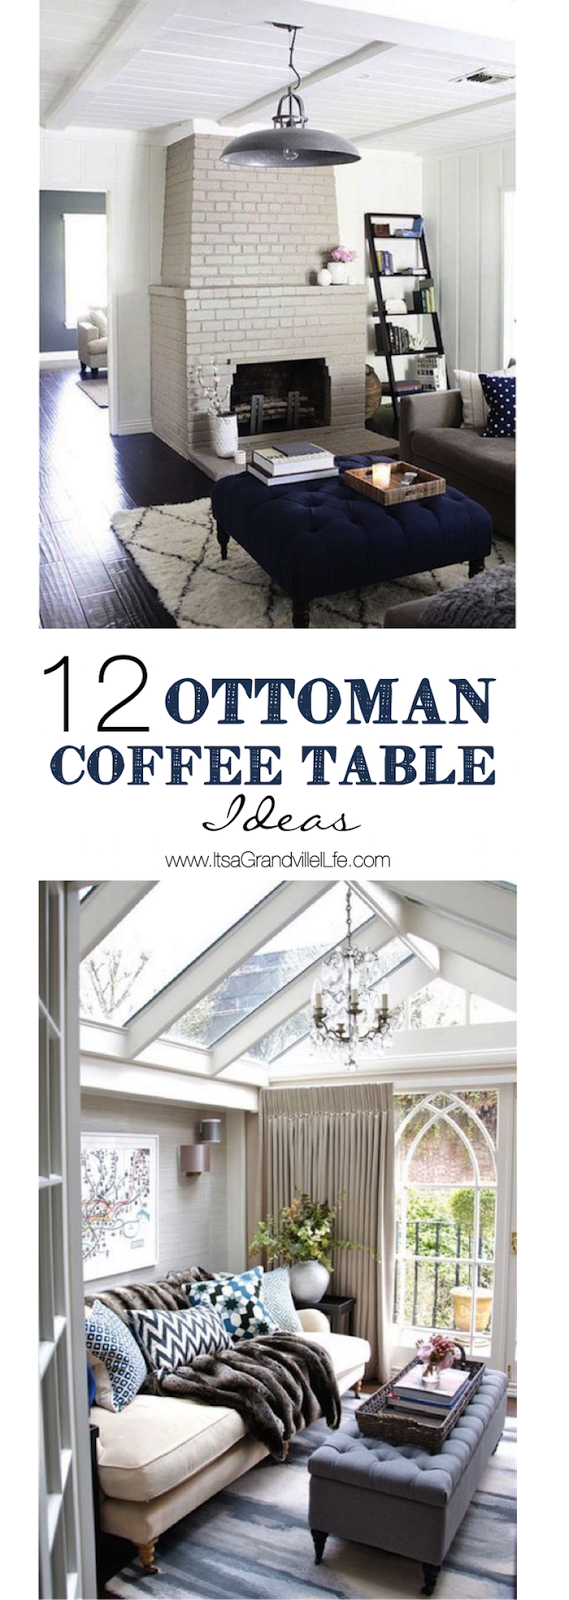 It S A Grandville Life Ottoman Coffee Table Ideas